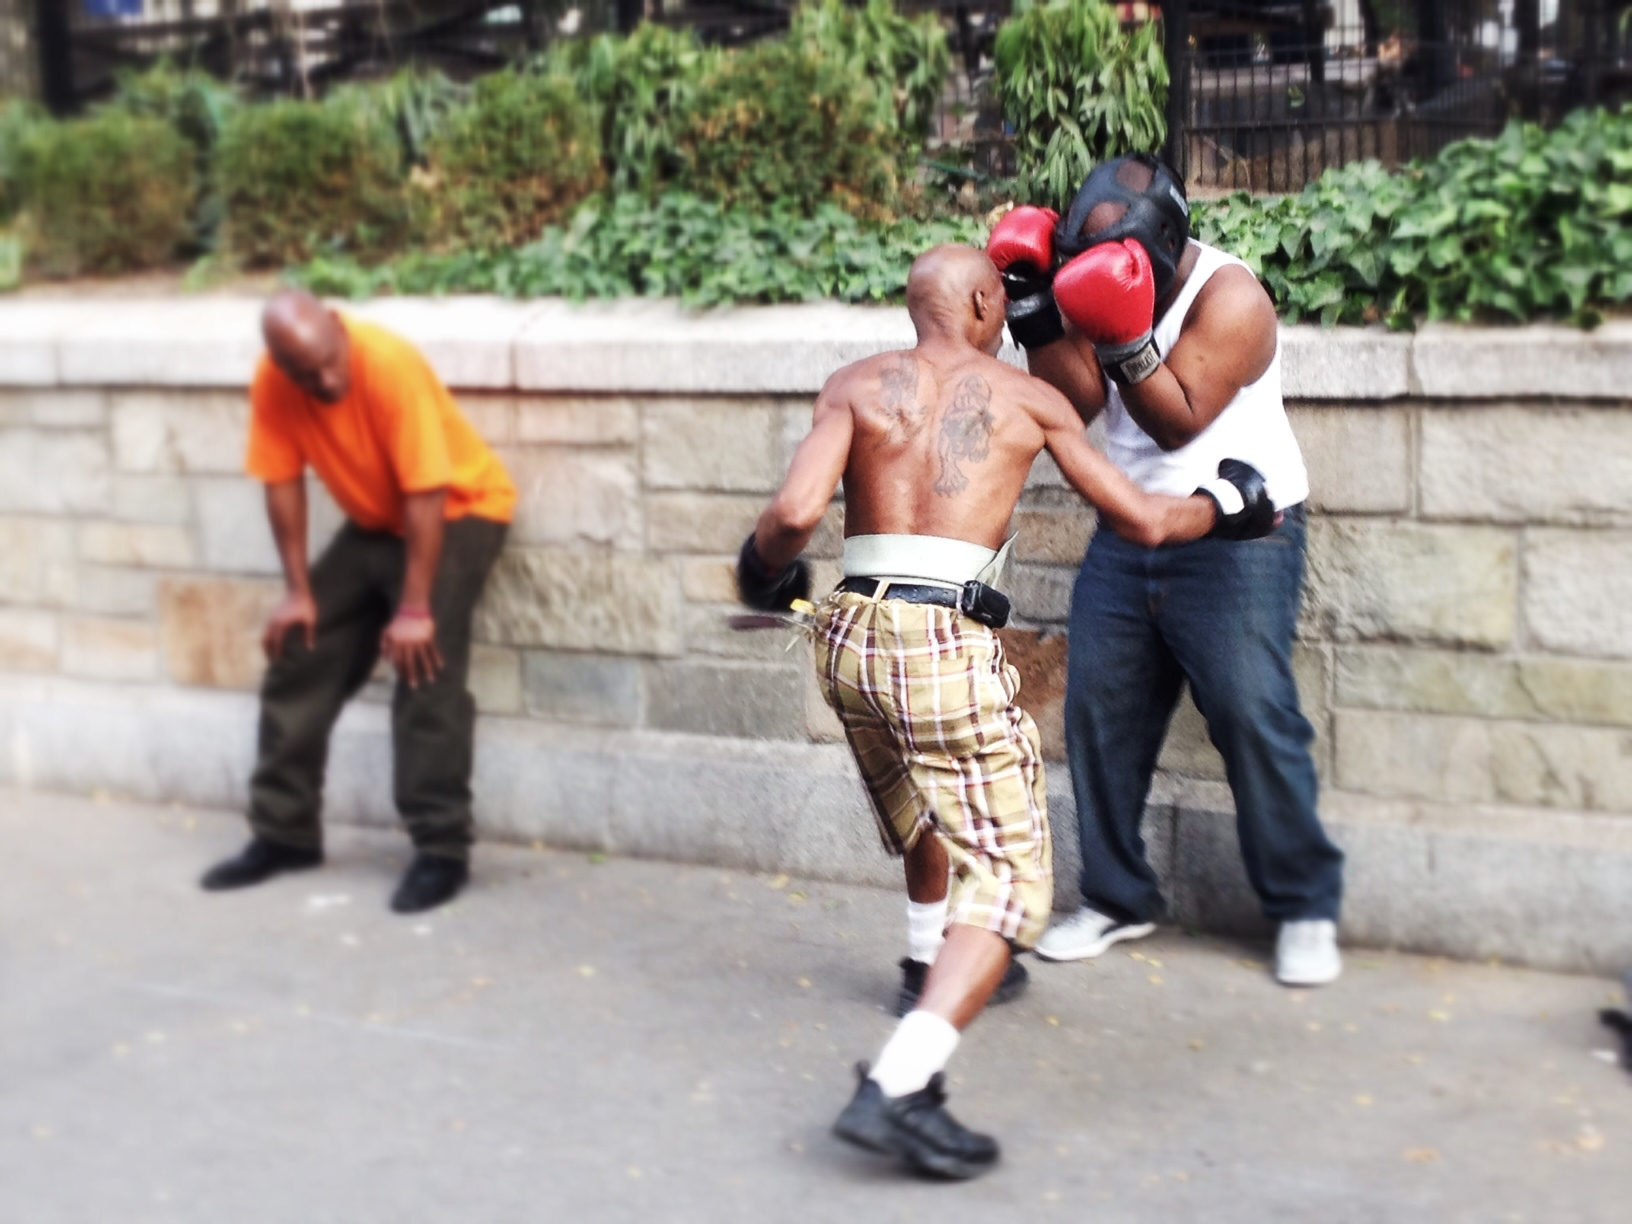 union_square_fight_4